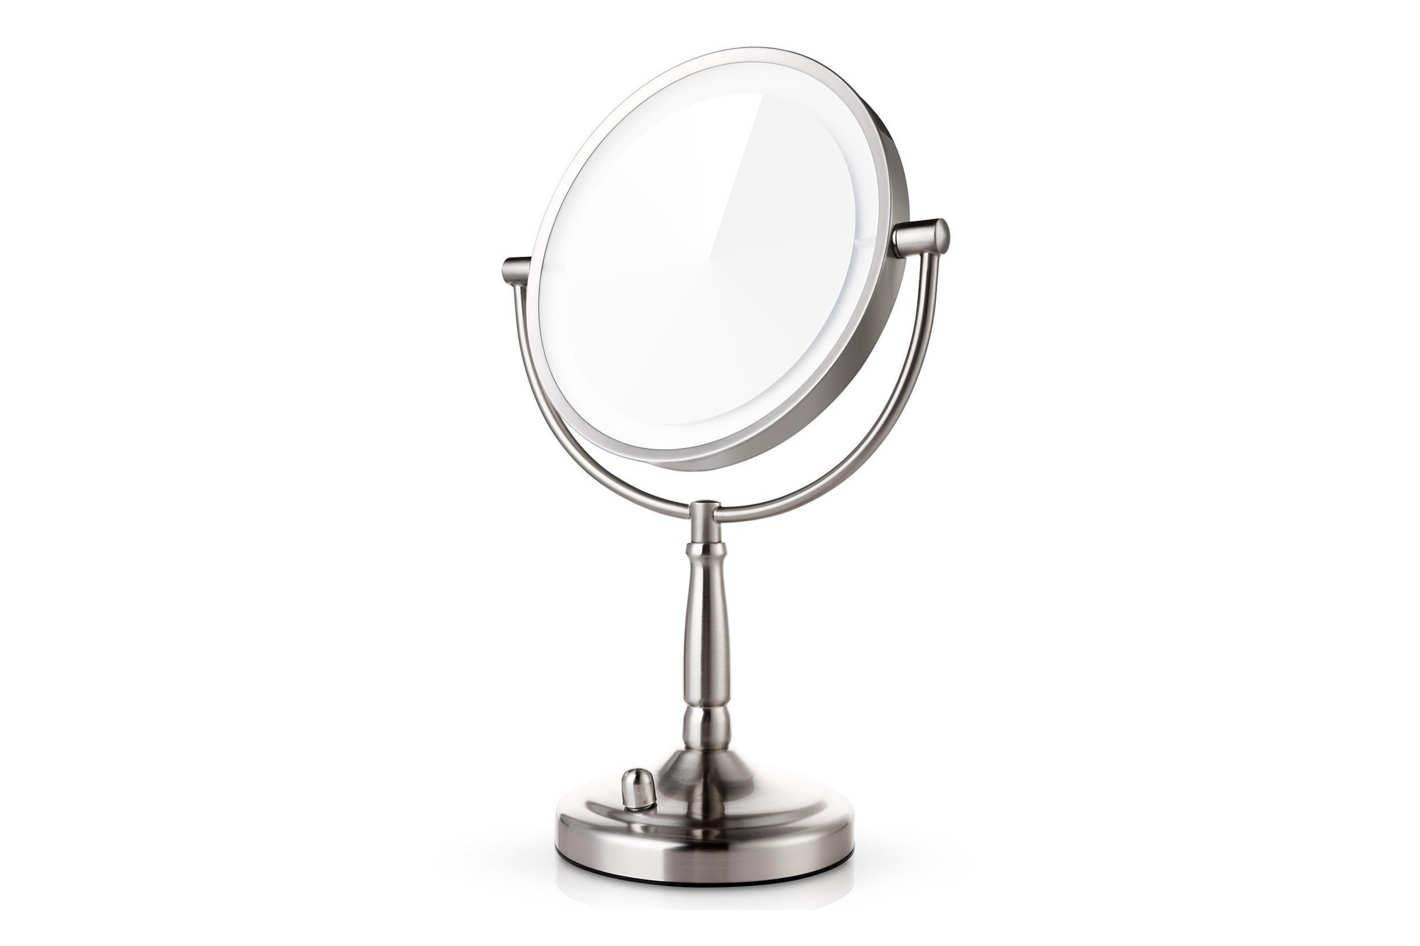 11 Best Vanity Makeup Mirrors Lights 2017: Lighted Mirrors Within Lit Makeup Mirrors (View 12 of 20)